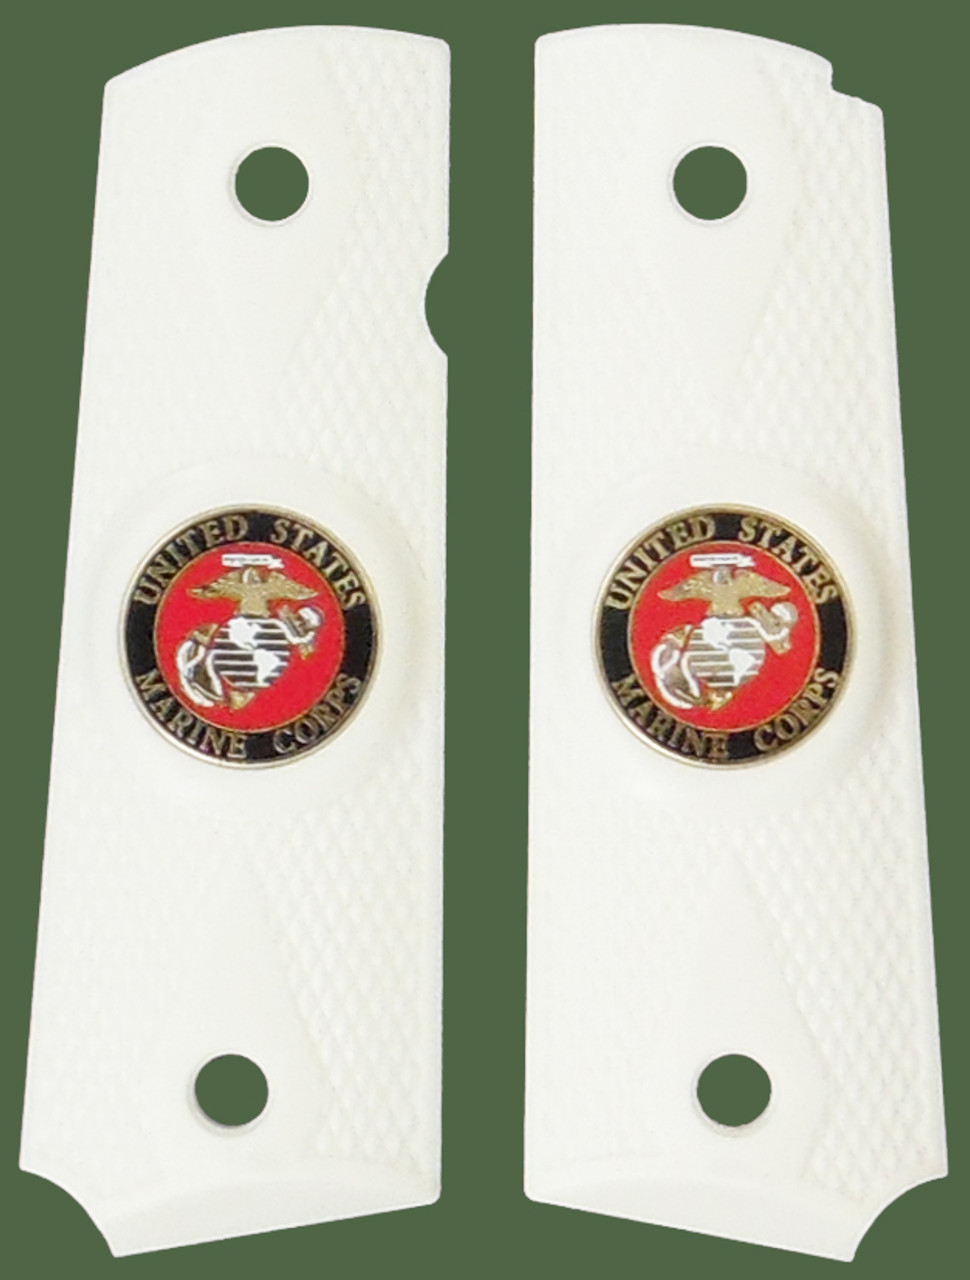 1911 Government Model US Marine Corps USMC Emblems Set In Light Ivory Color Grips G54